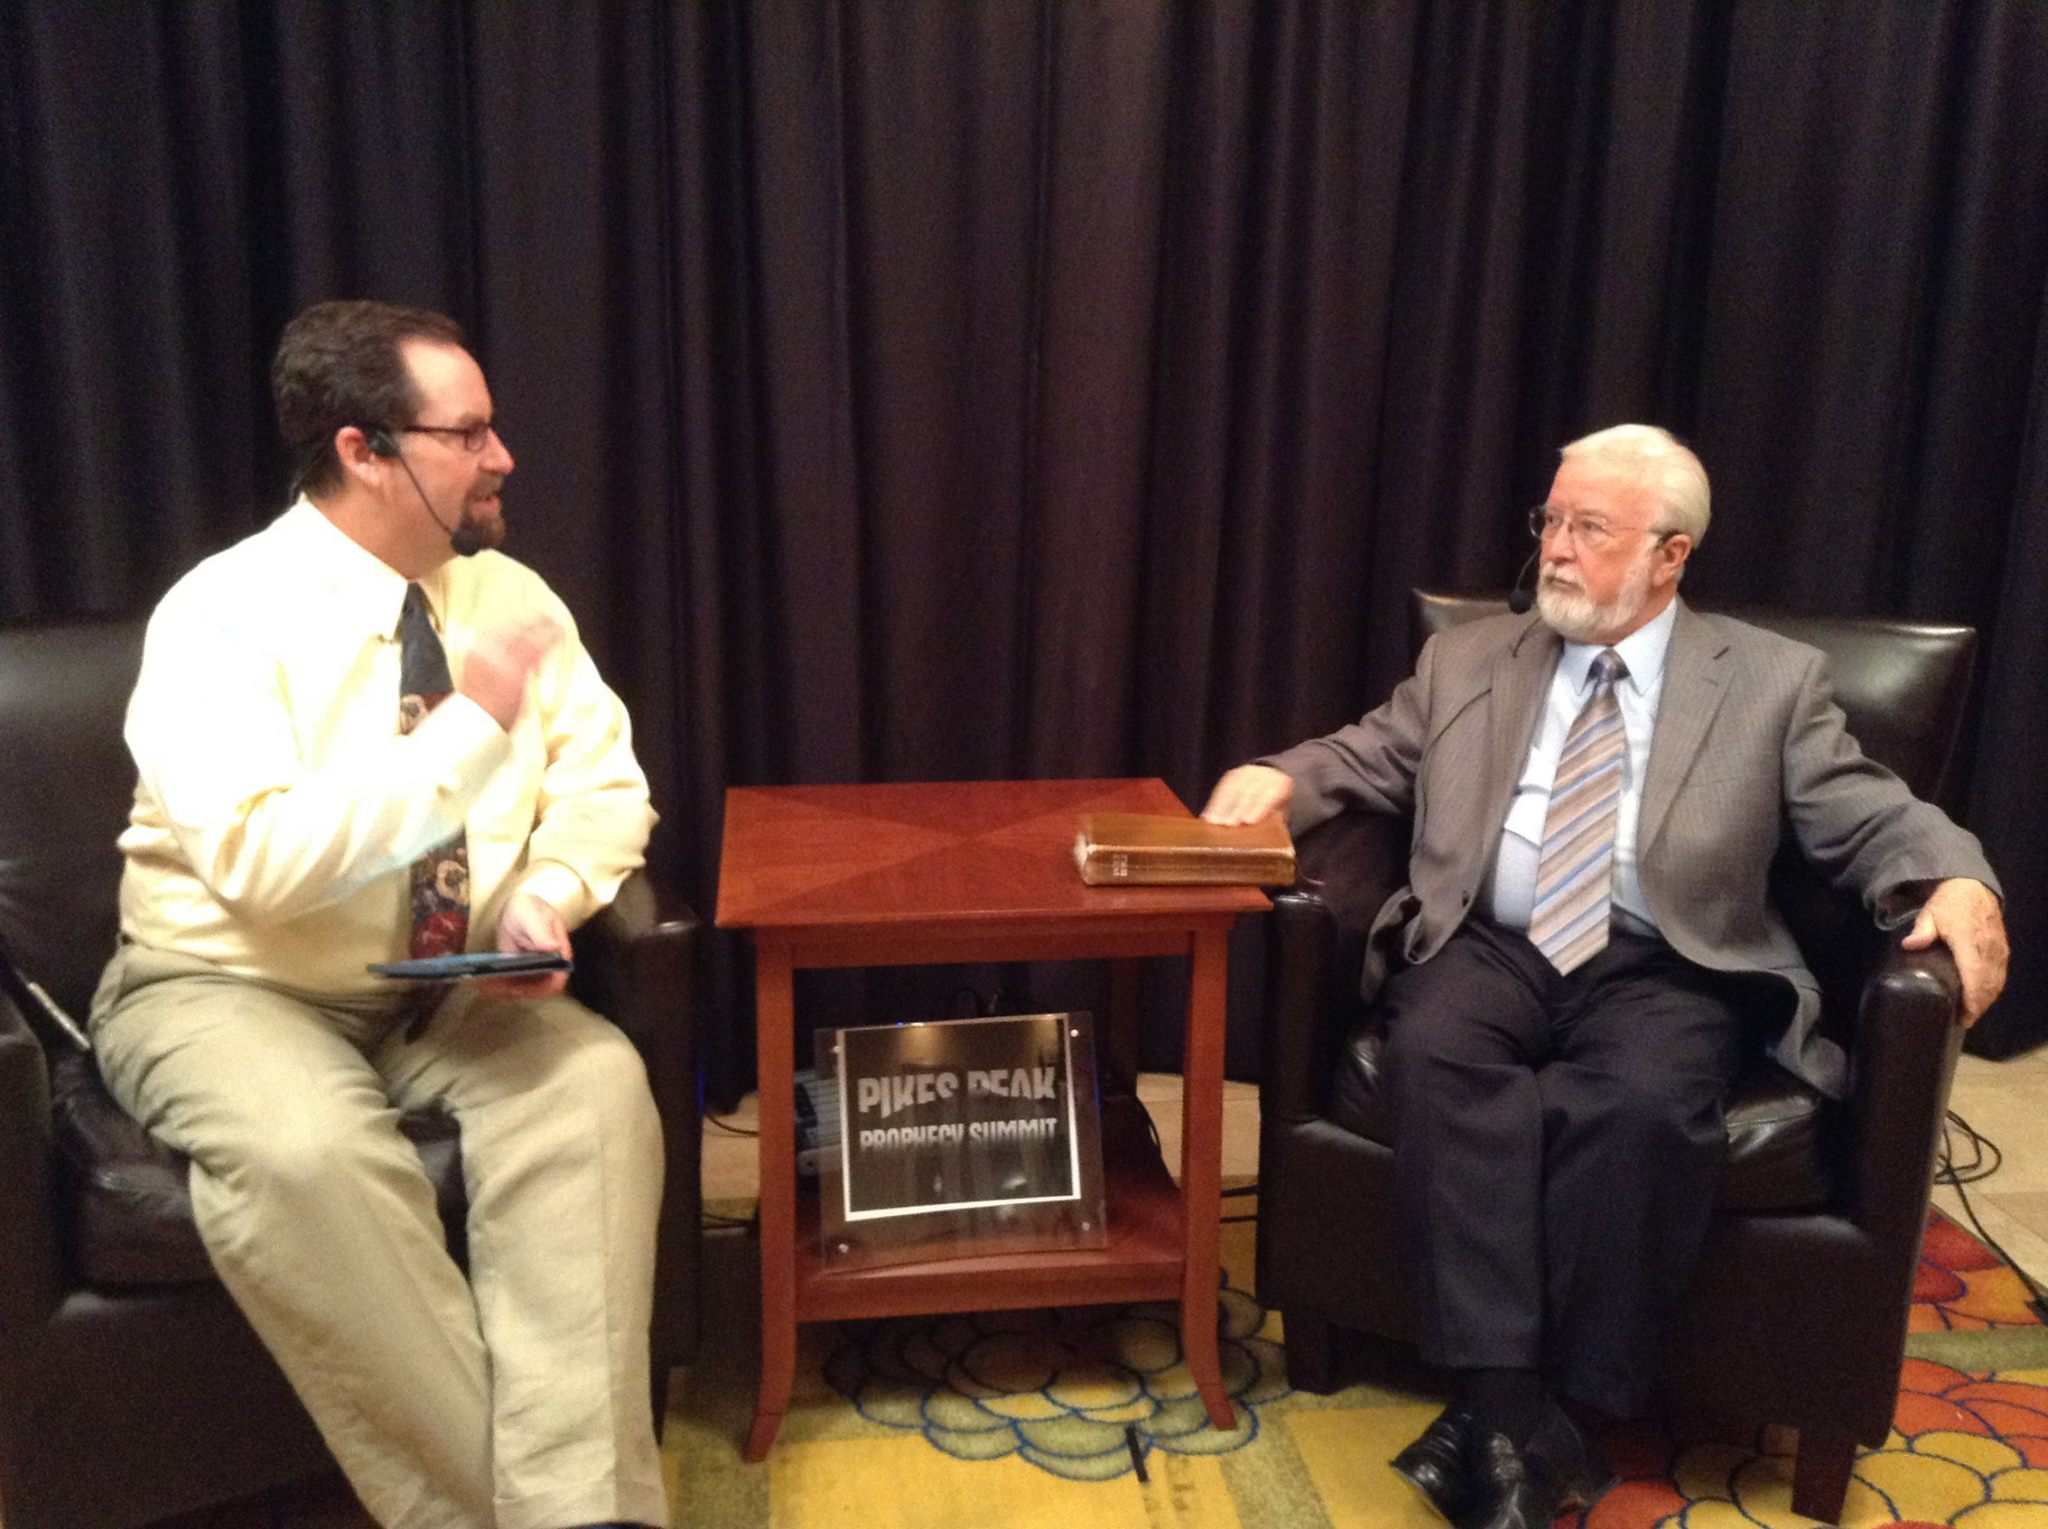 Derek Gilbert and Gary Stearman at the 2014 Pikes Peak Prophecy Summit